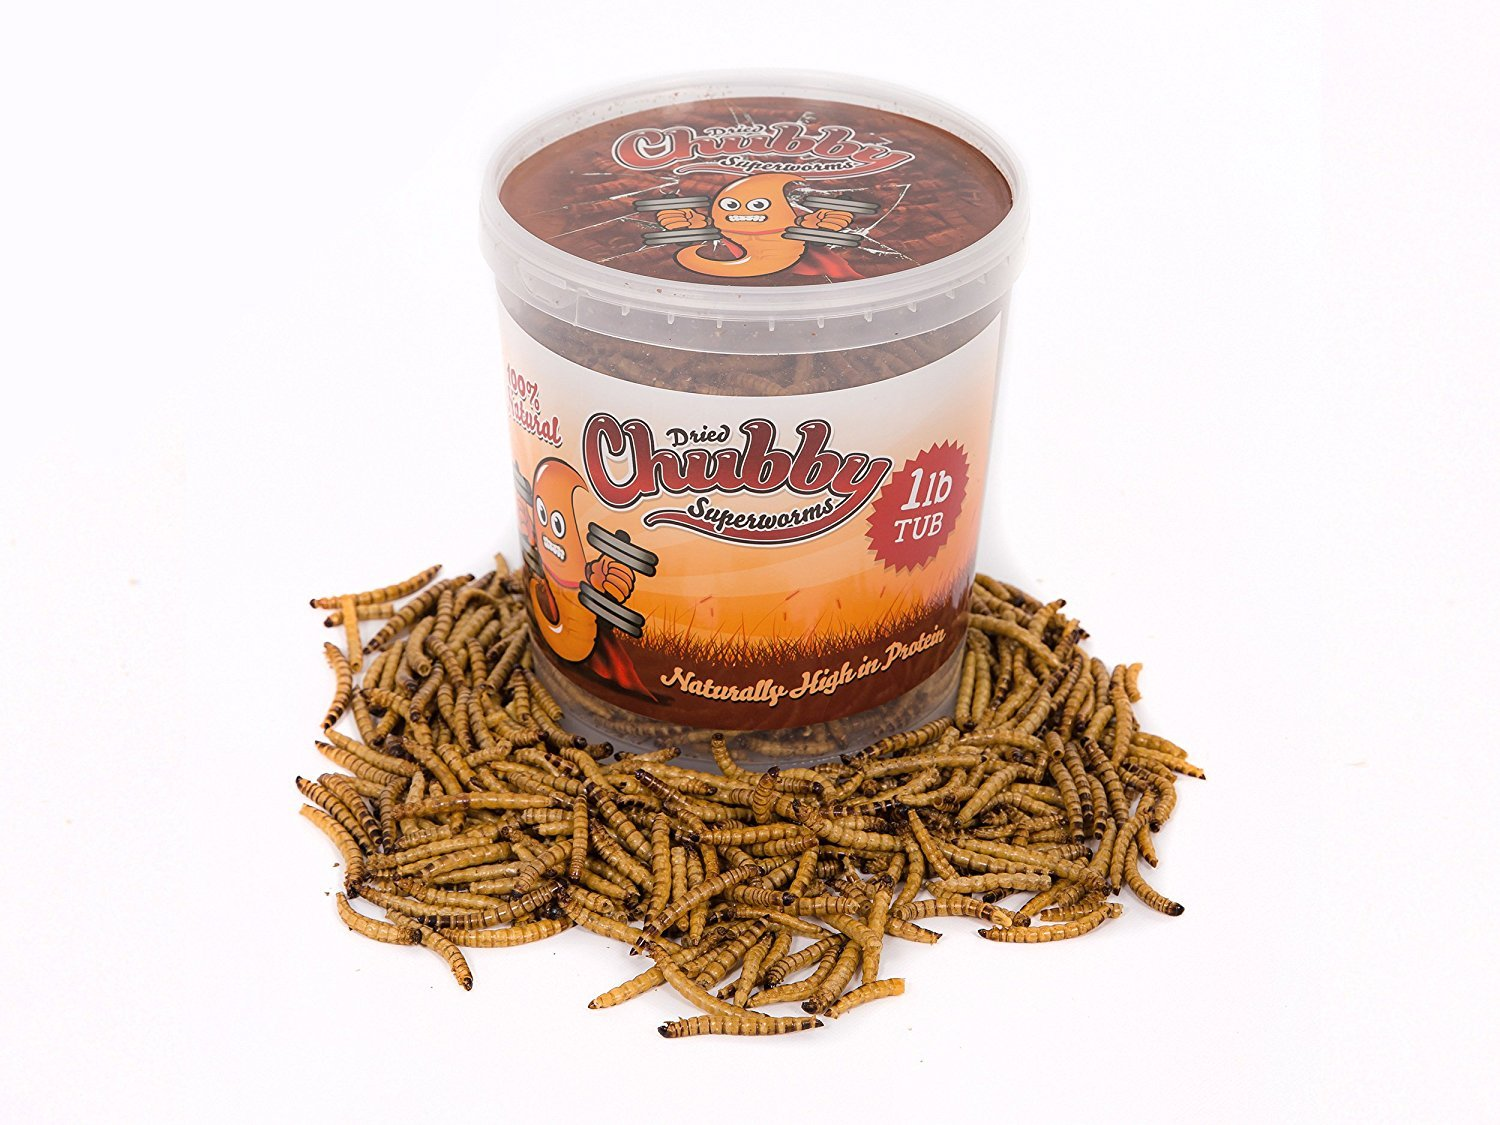 Chubby Dried Super Worms 1lb Tub